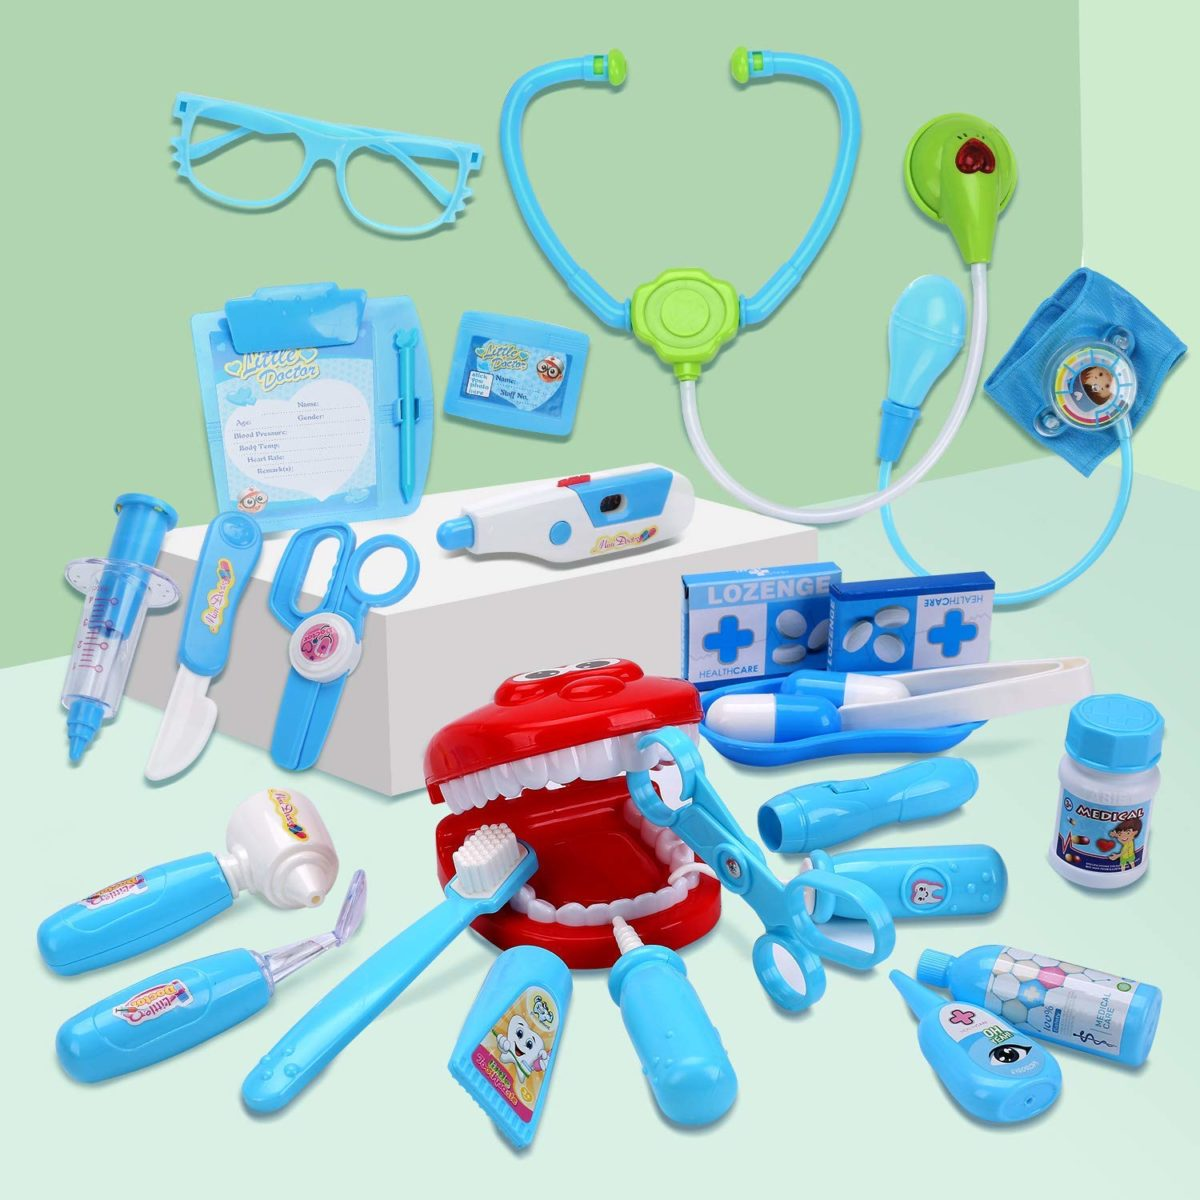 Cute Stone Toy Medical Kit - Top Toys and Gifts for Four Year Old Boys 2